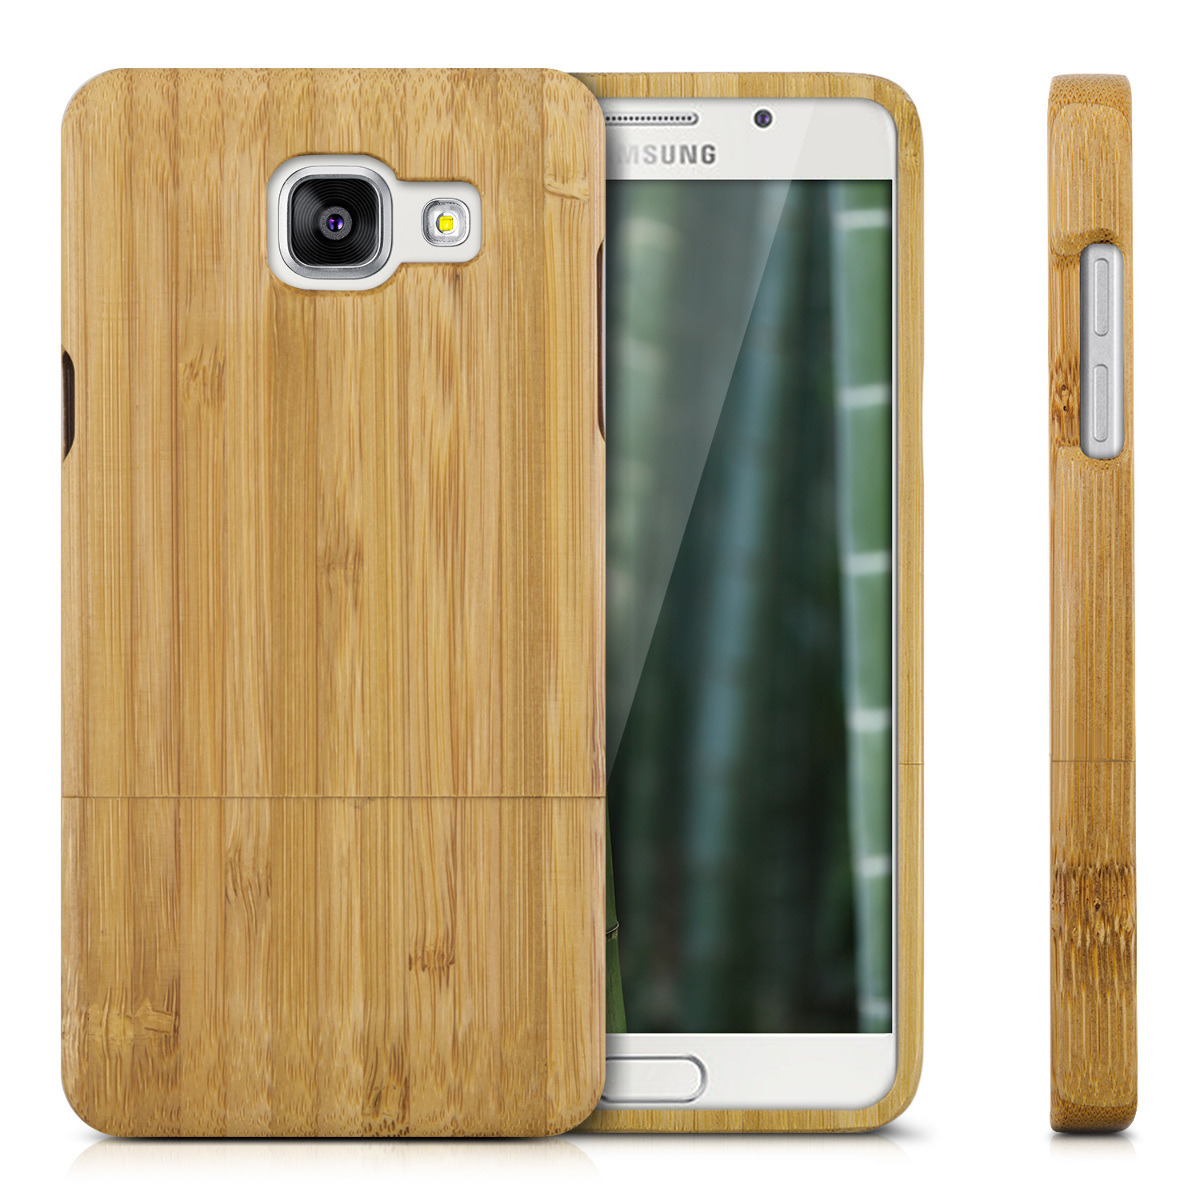 Case Design bamboo cell phone case : Cell Phones u0026 Accessories u0026gt; Cell Phone Accessories u0026gt; Cases, Covers ...